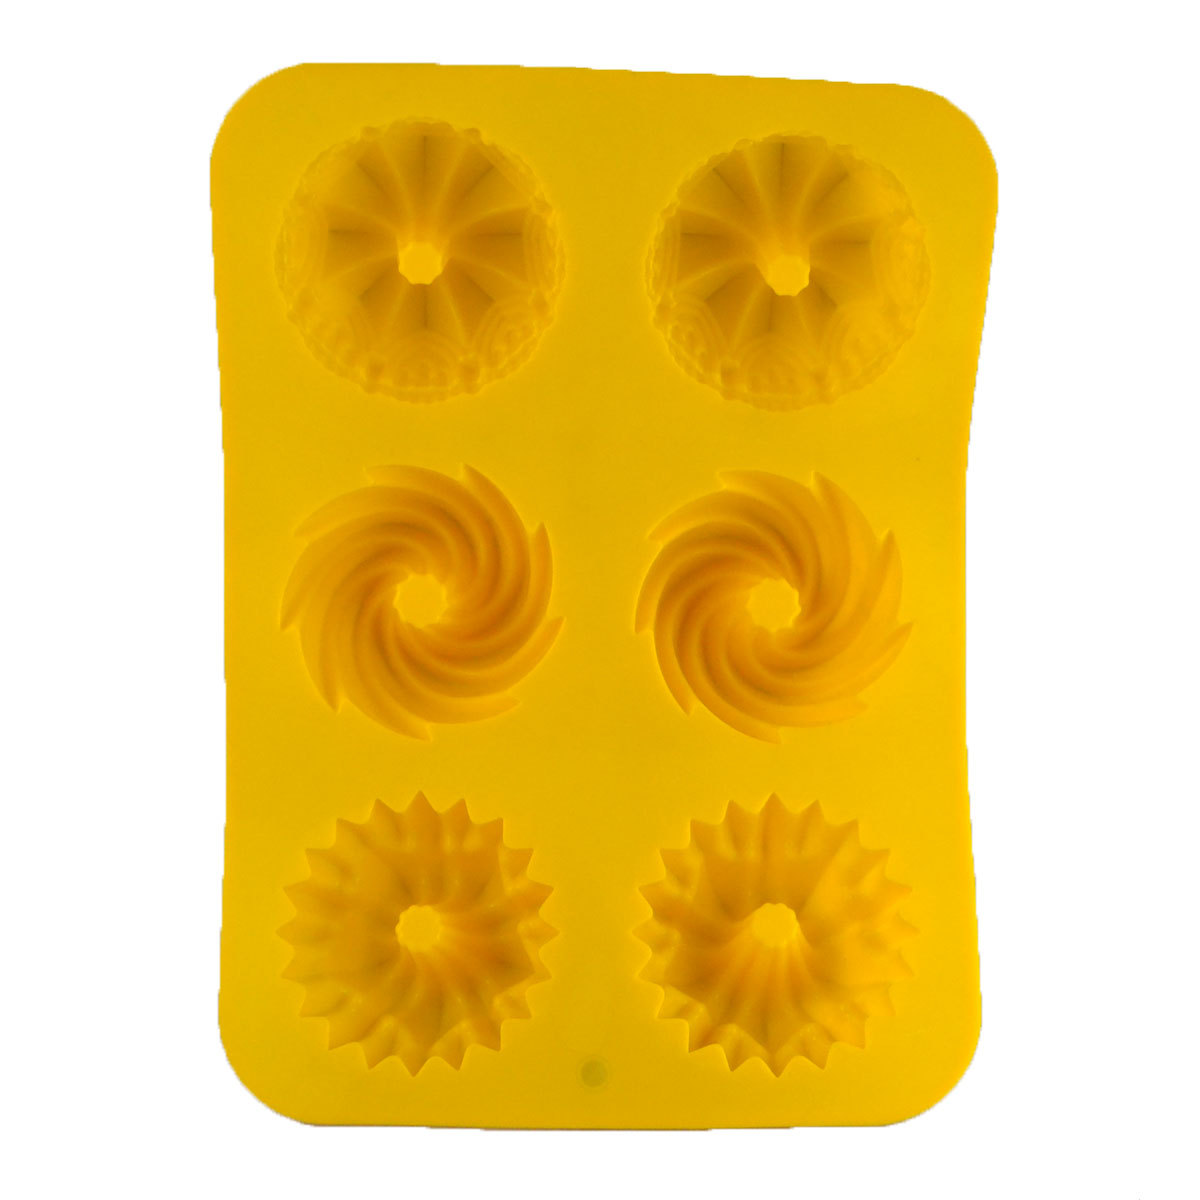 Microwave oven silica gel cake baking mould DIY Handmade Soap Making Silicone Mold in Soap Molds from Home Garden